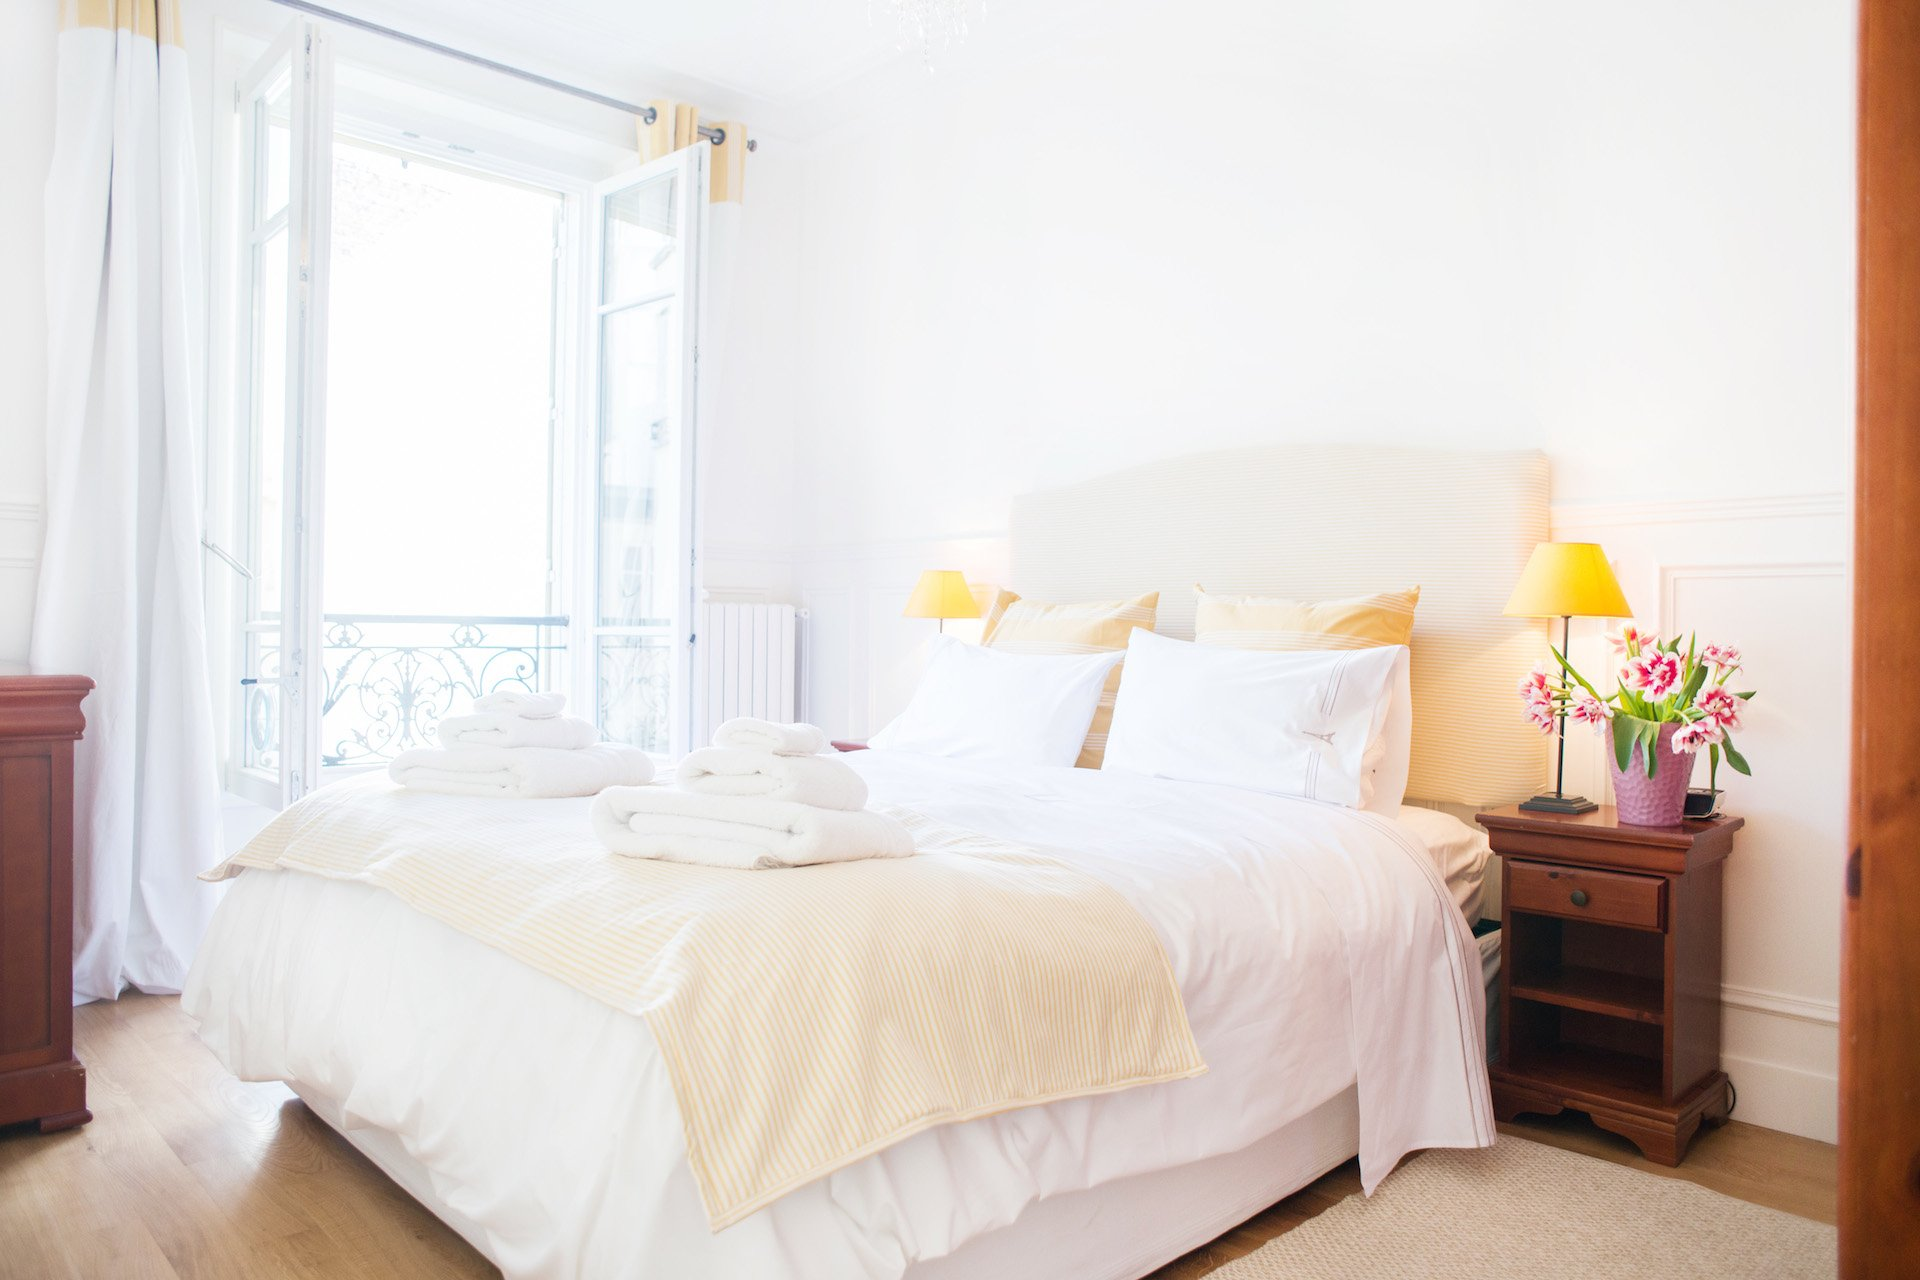 The elegant first bedroom of the Vougeot vacation rental offered by Paris Perfect